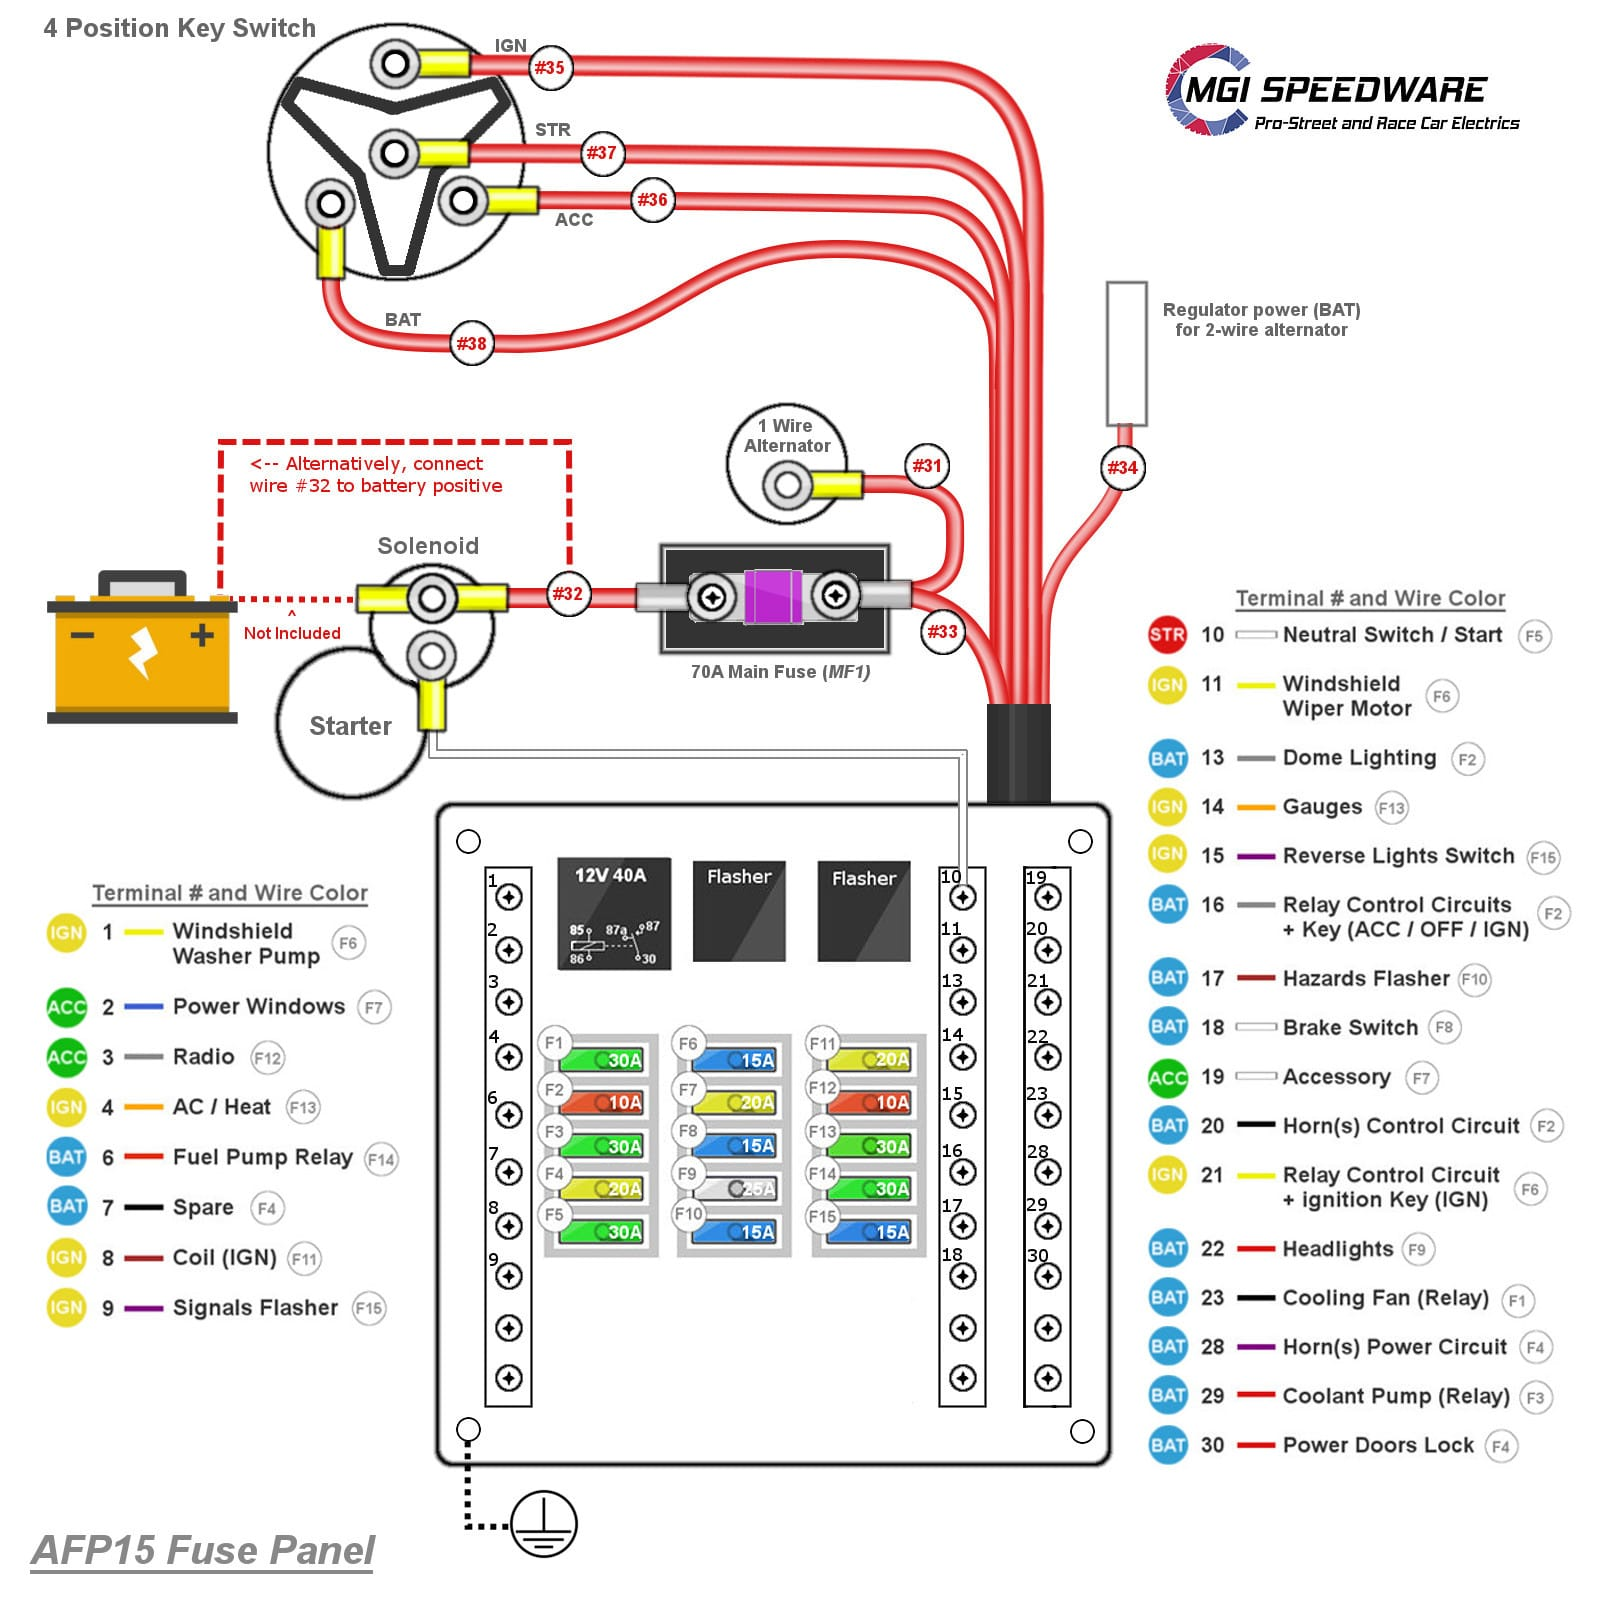 Basic Wiring Click For Details Wiring Diagram With Accessory And